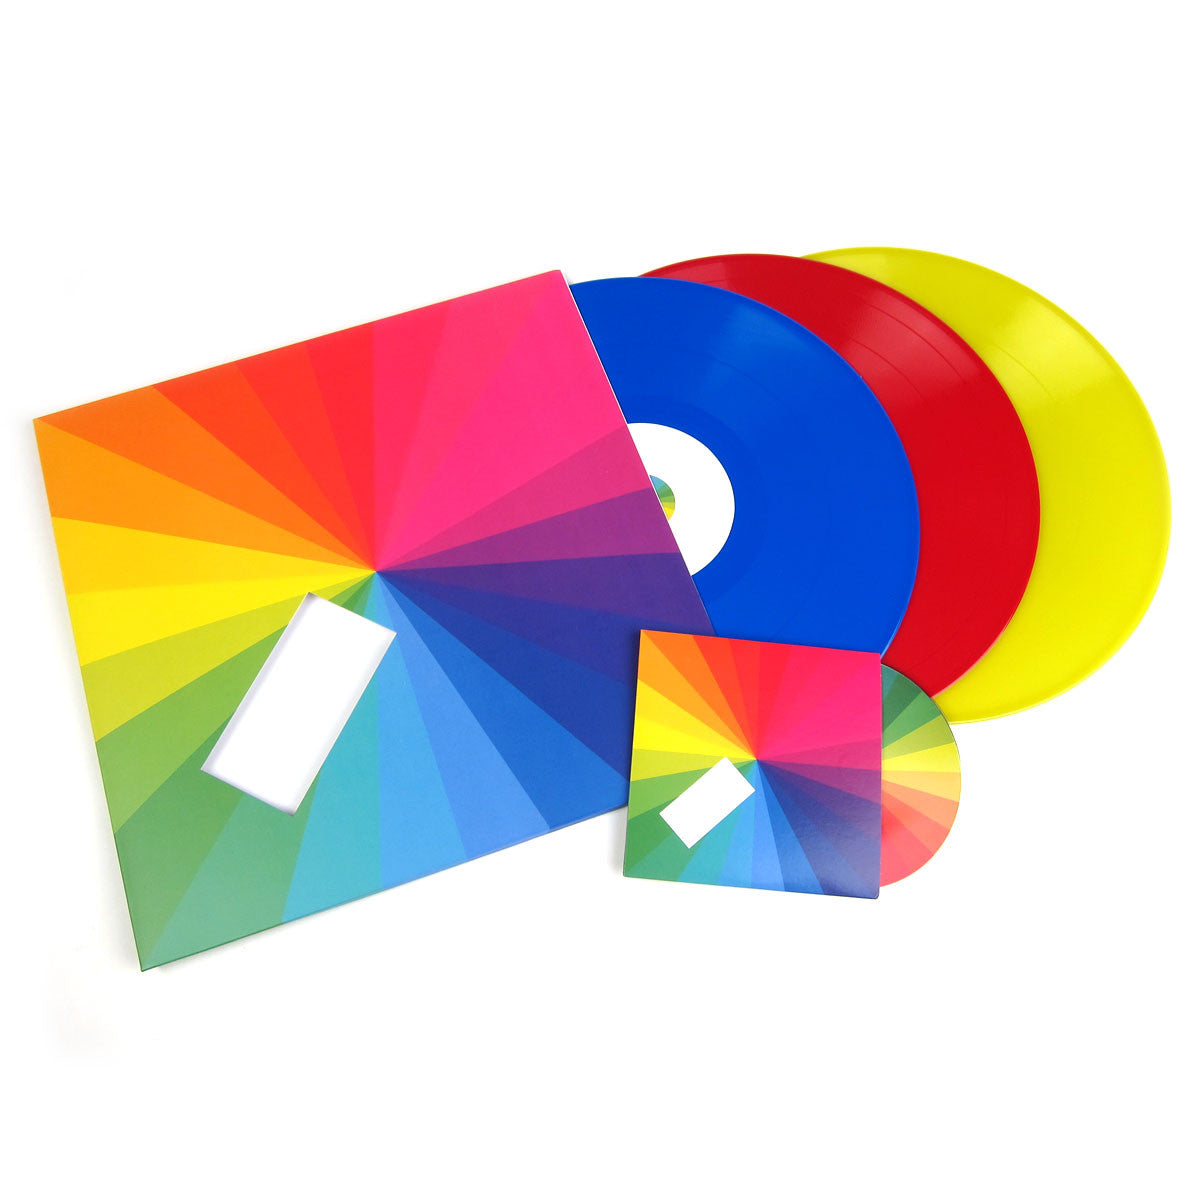 Jamie xx: In Colour (Deluxe Edition Colored Vinyl) Vinyl 3LP - PRE-ORDER